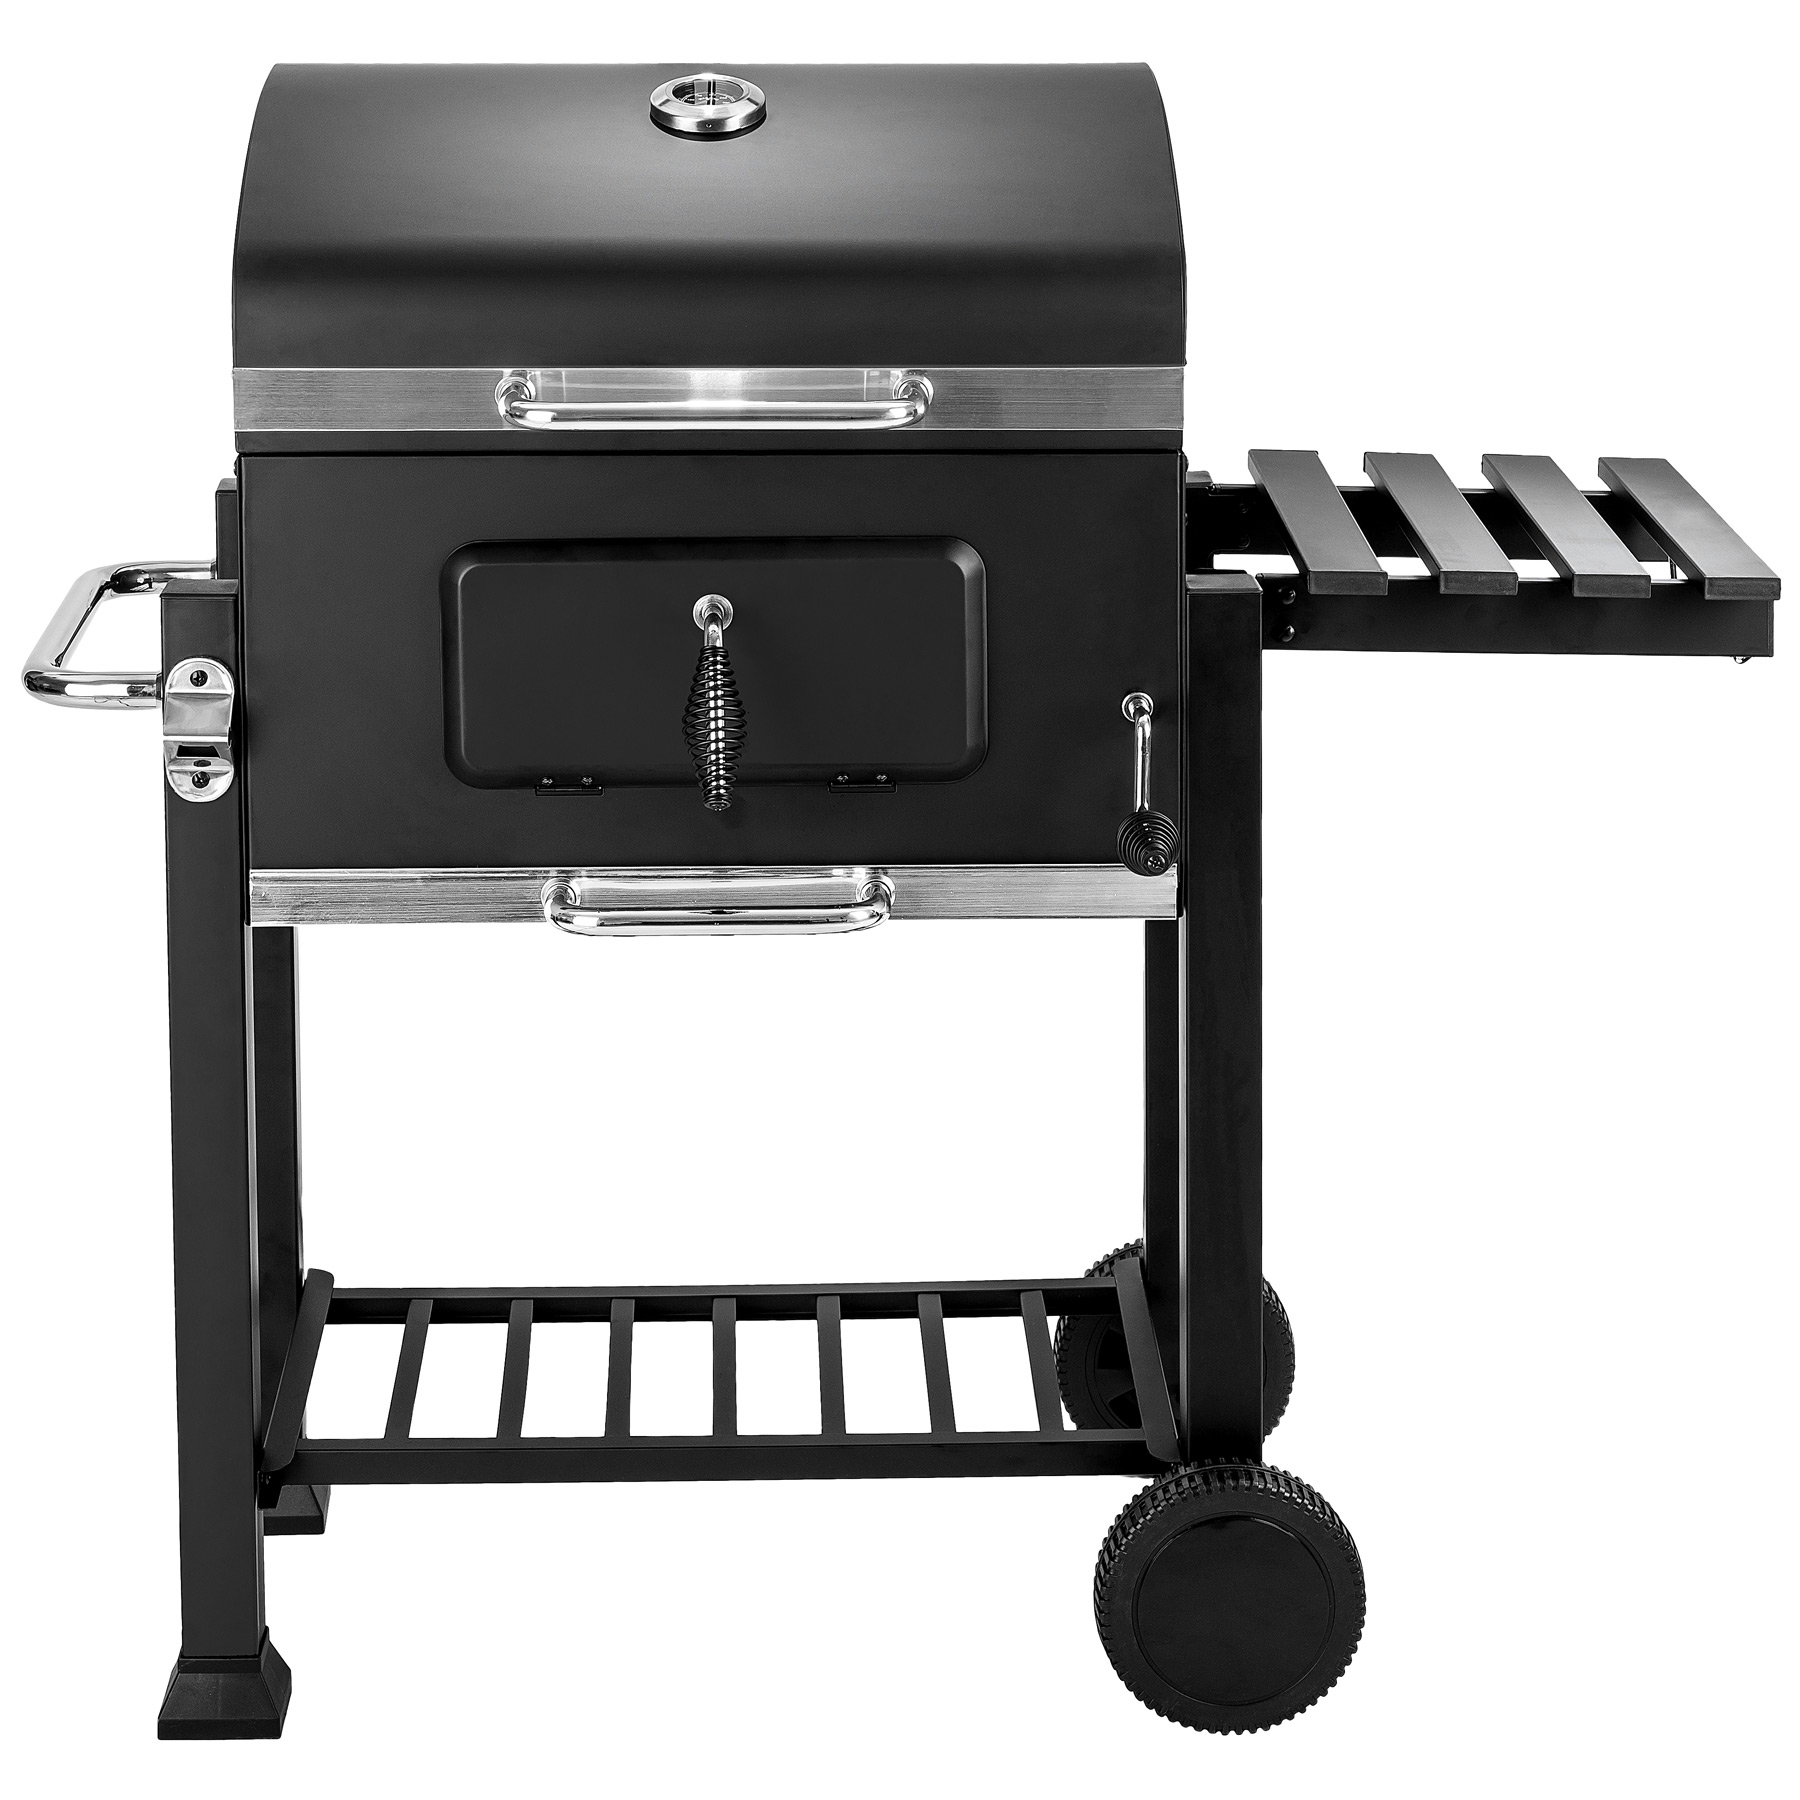 bbq holzkohle grill barbecue smoker r ucherofen grillwagen gartengrill ebay. Black Bedroom Furniture Sets. Home Design Ideas